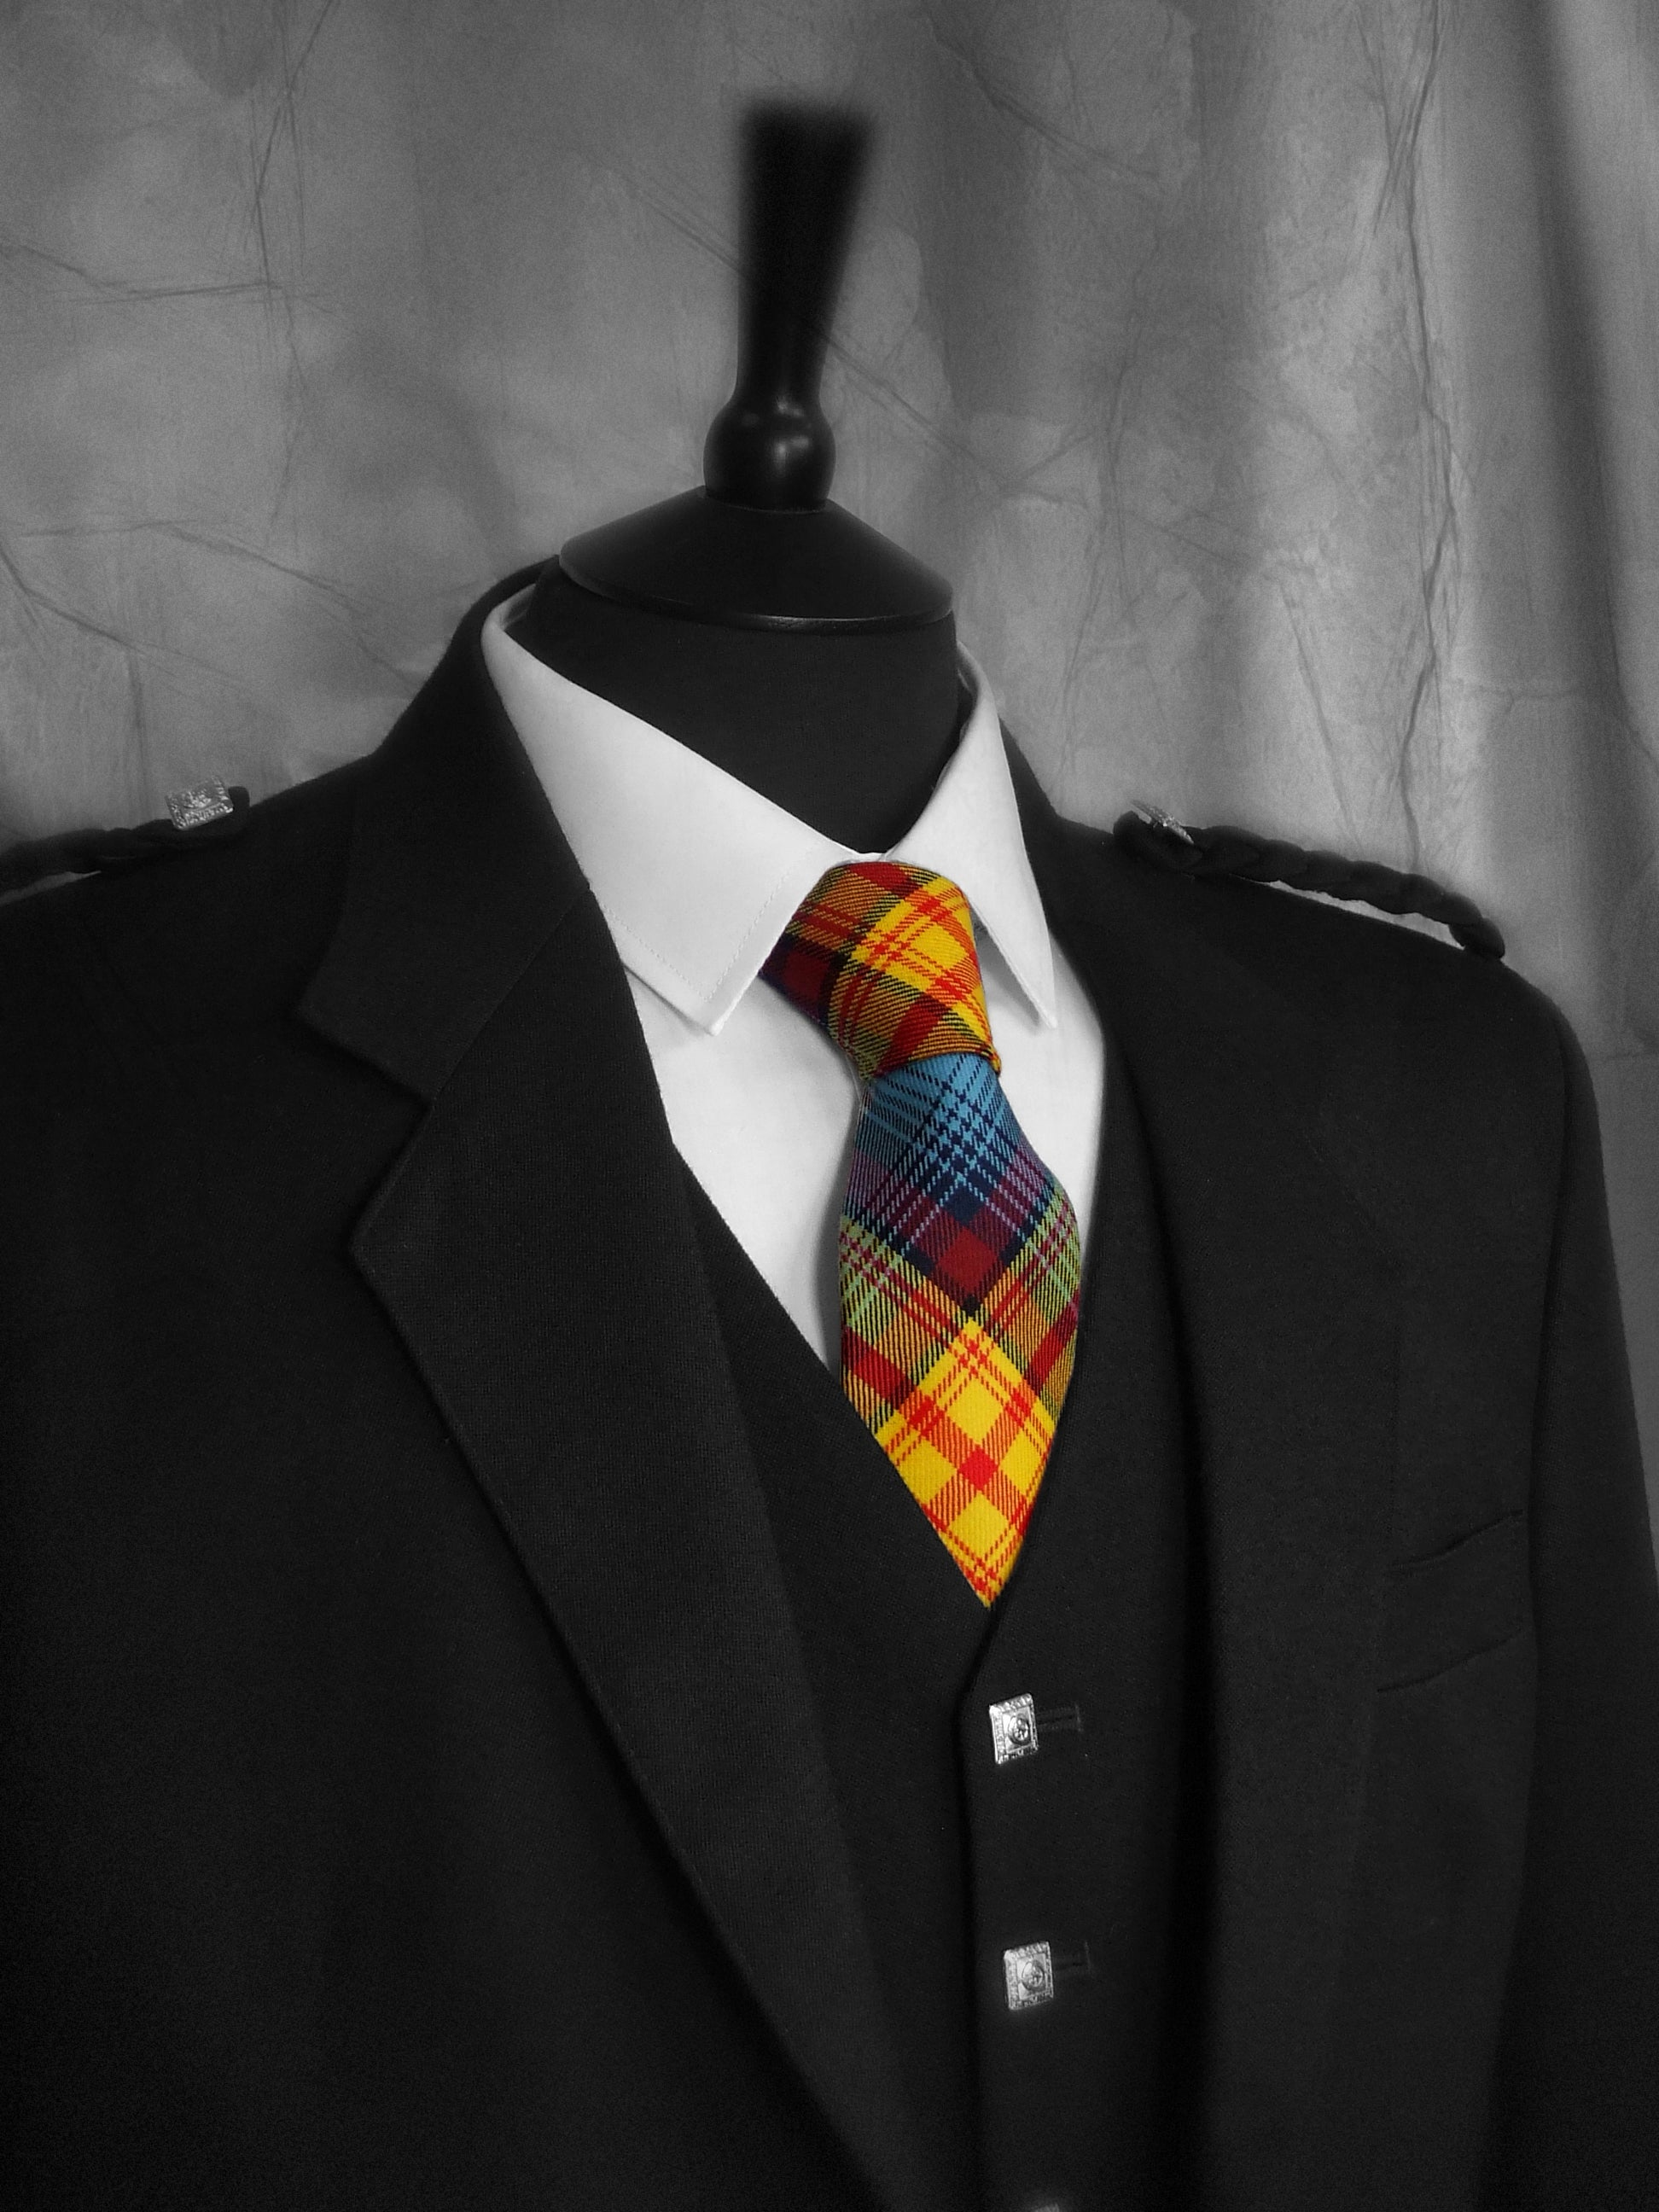 Scottish Independence Tartan Tie